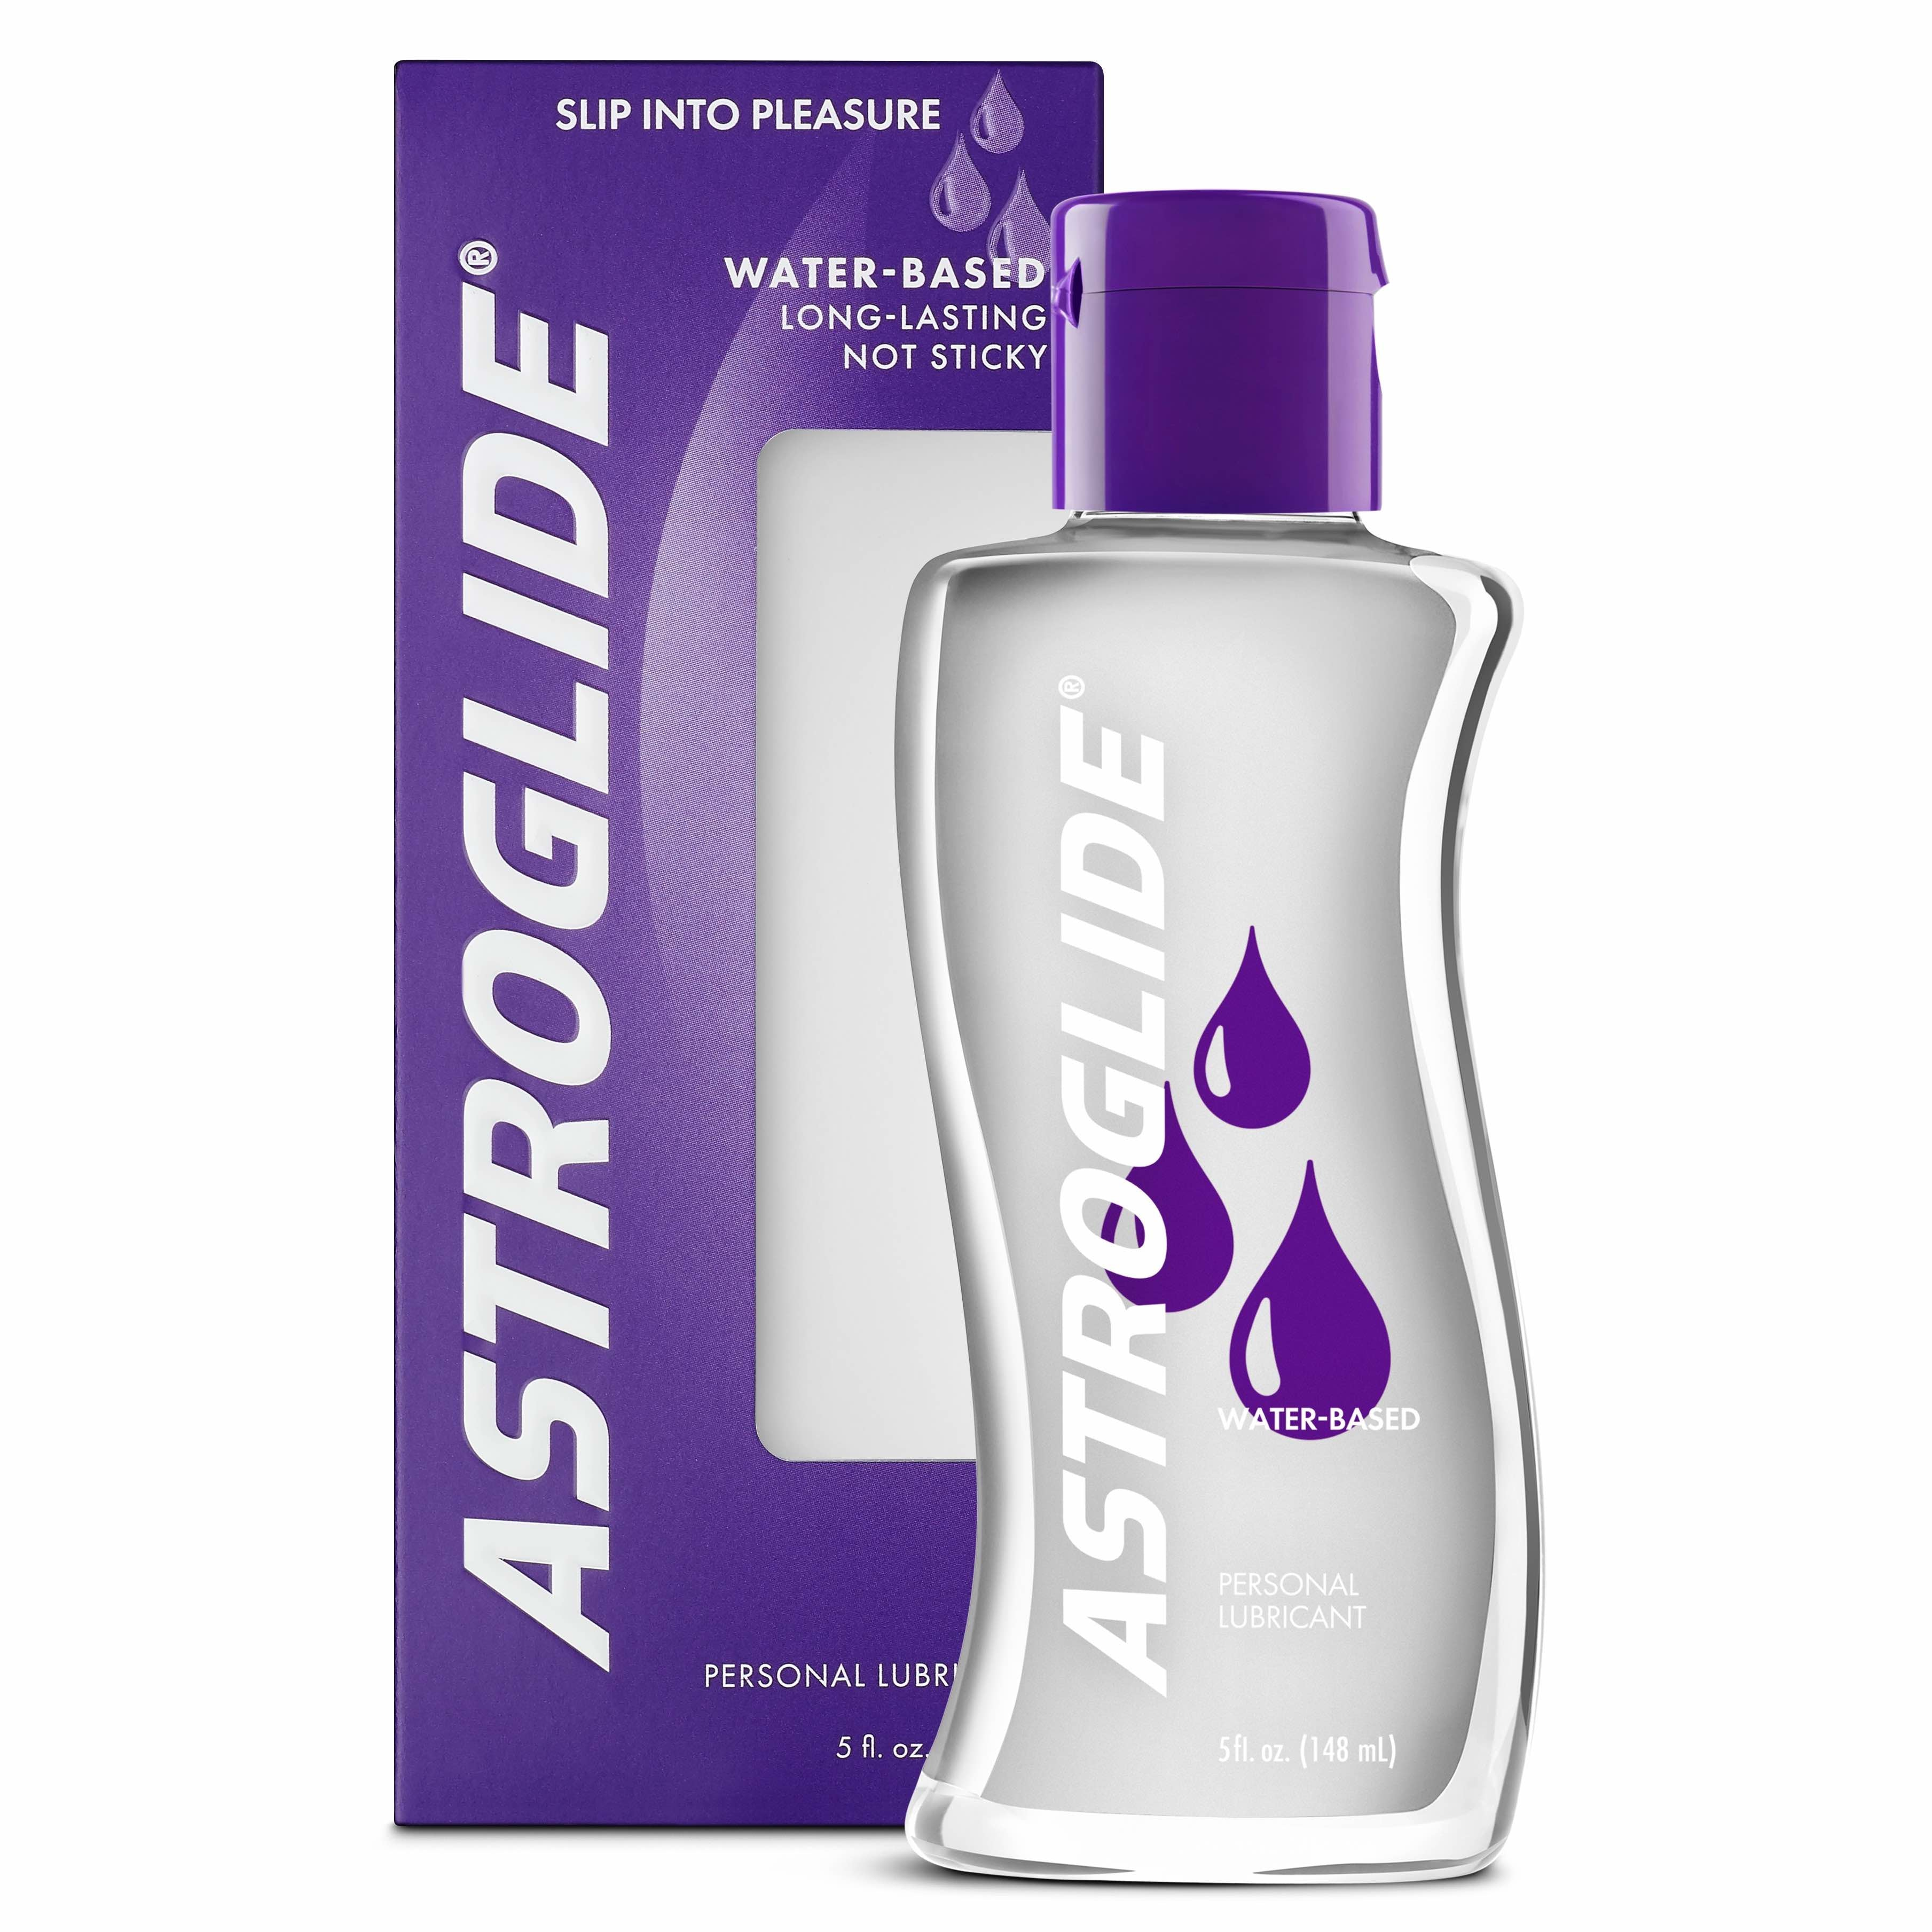 Astroglide Personal Water Based Lubricant | New London Pharmacy